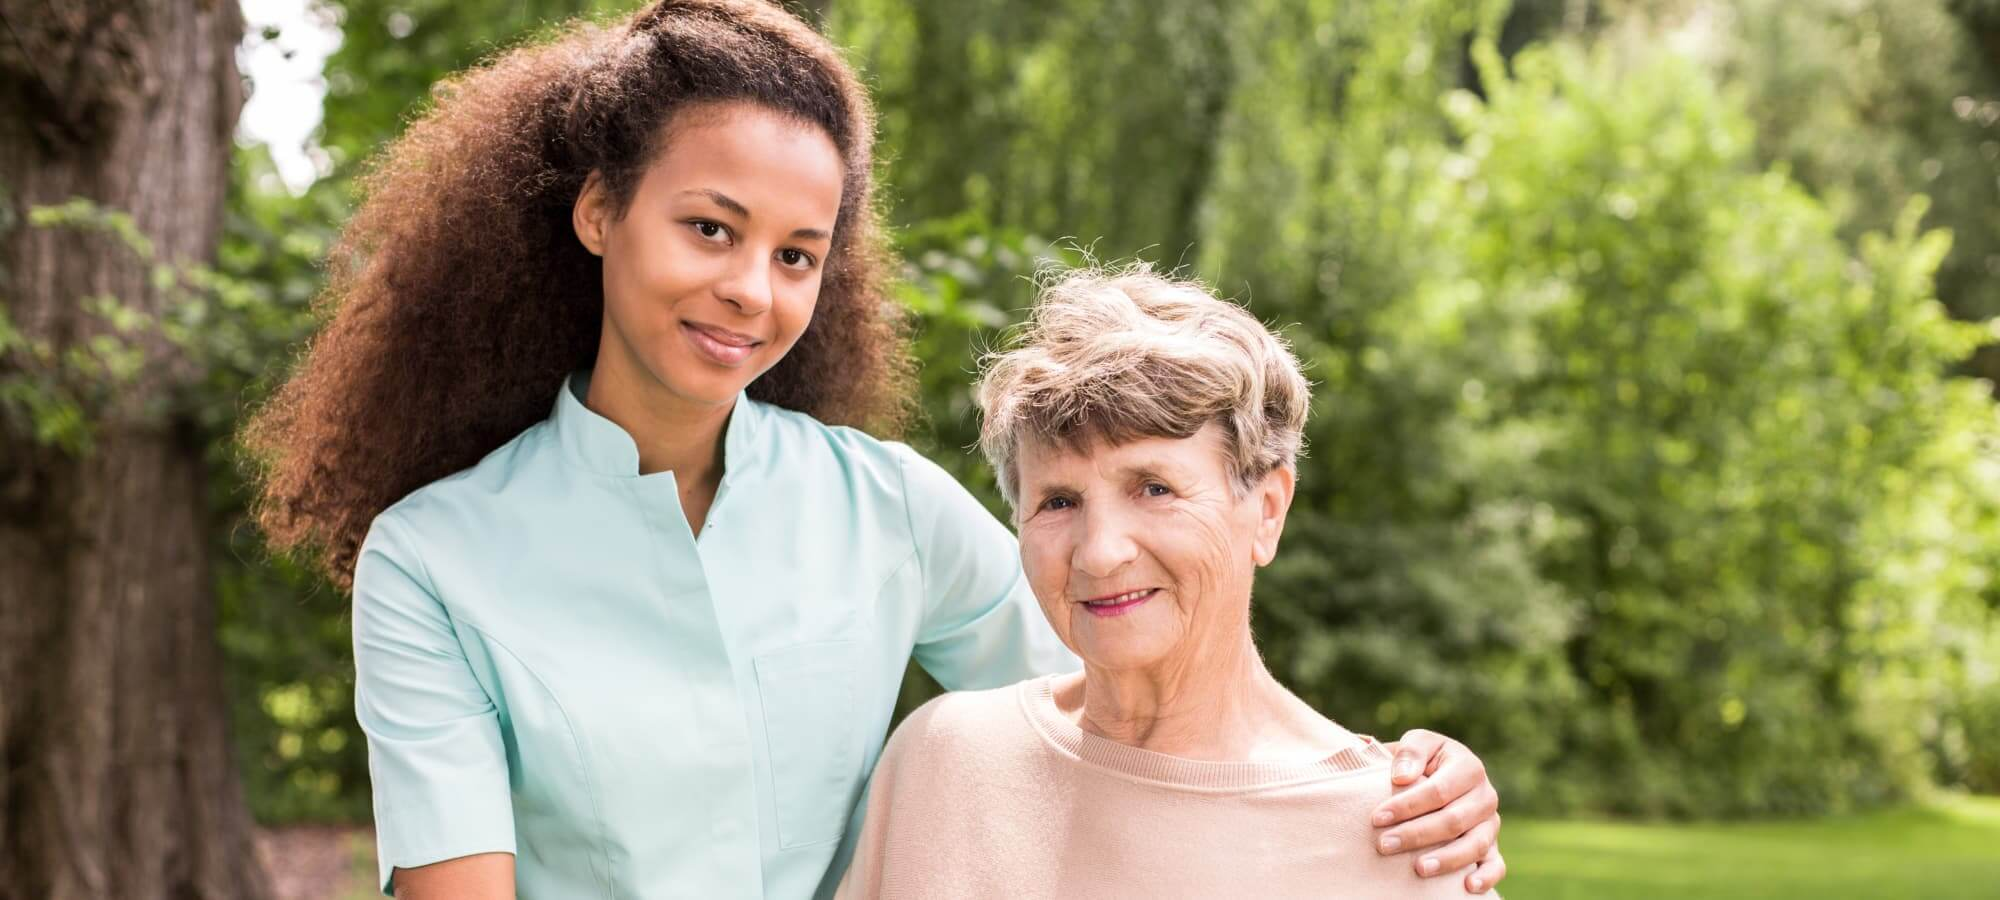 caregiver with her elderly patient